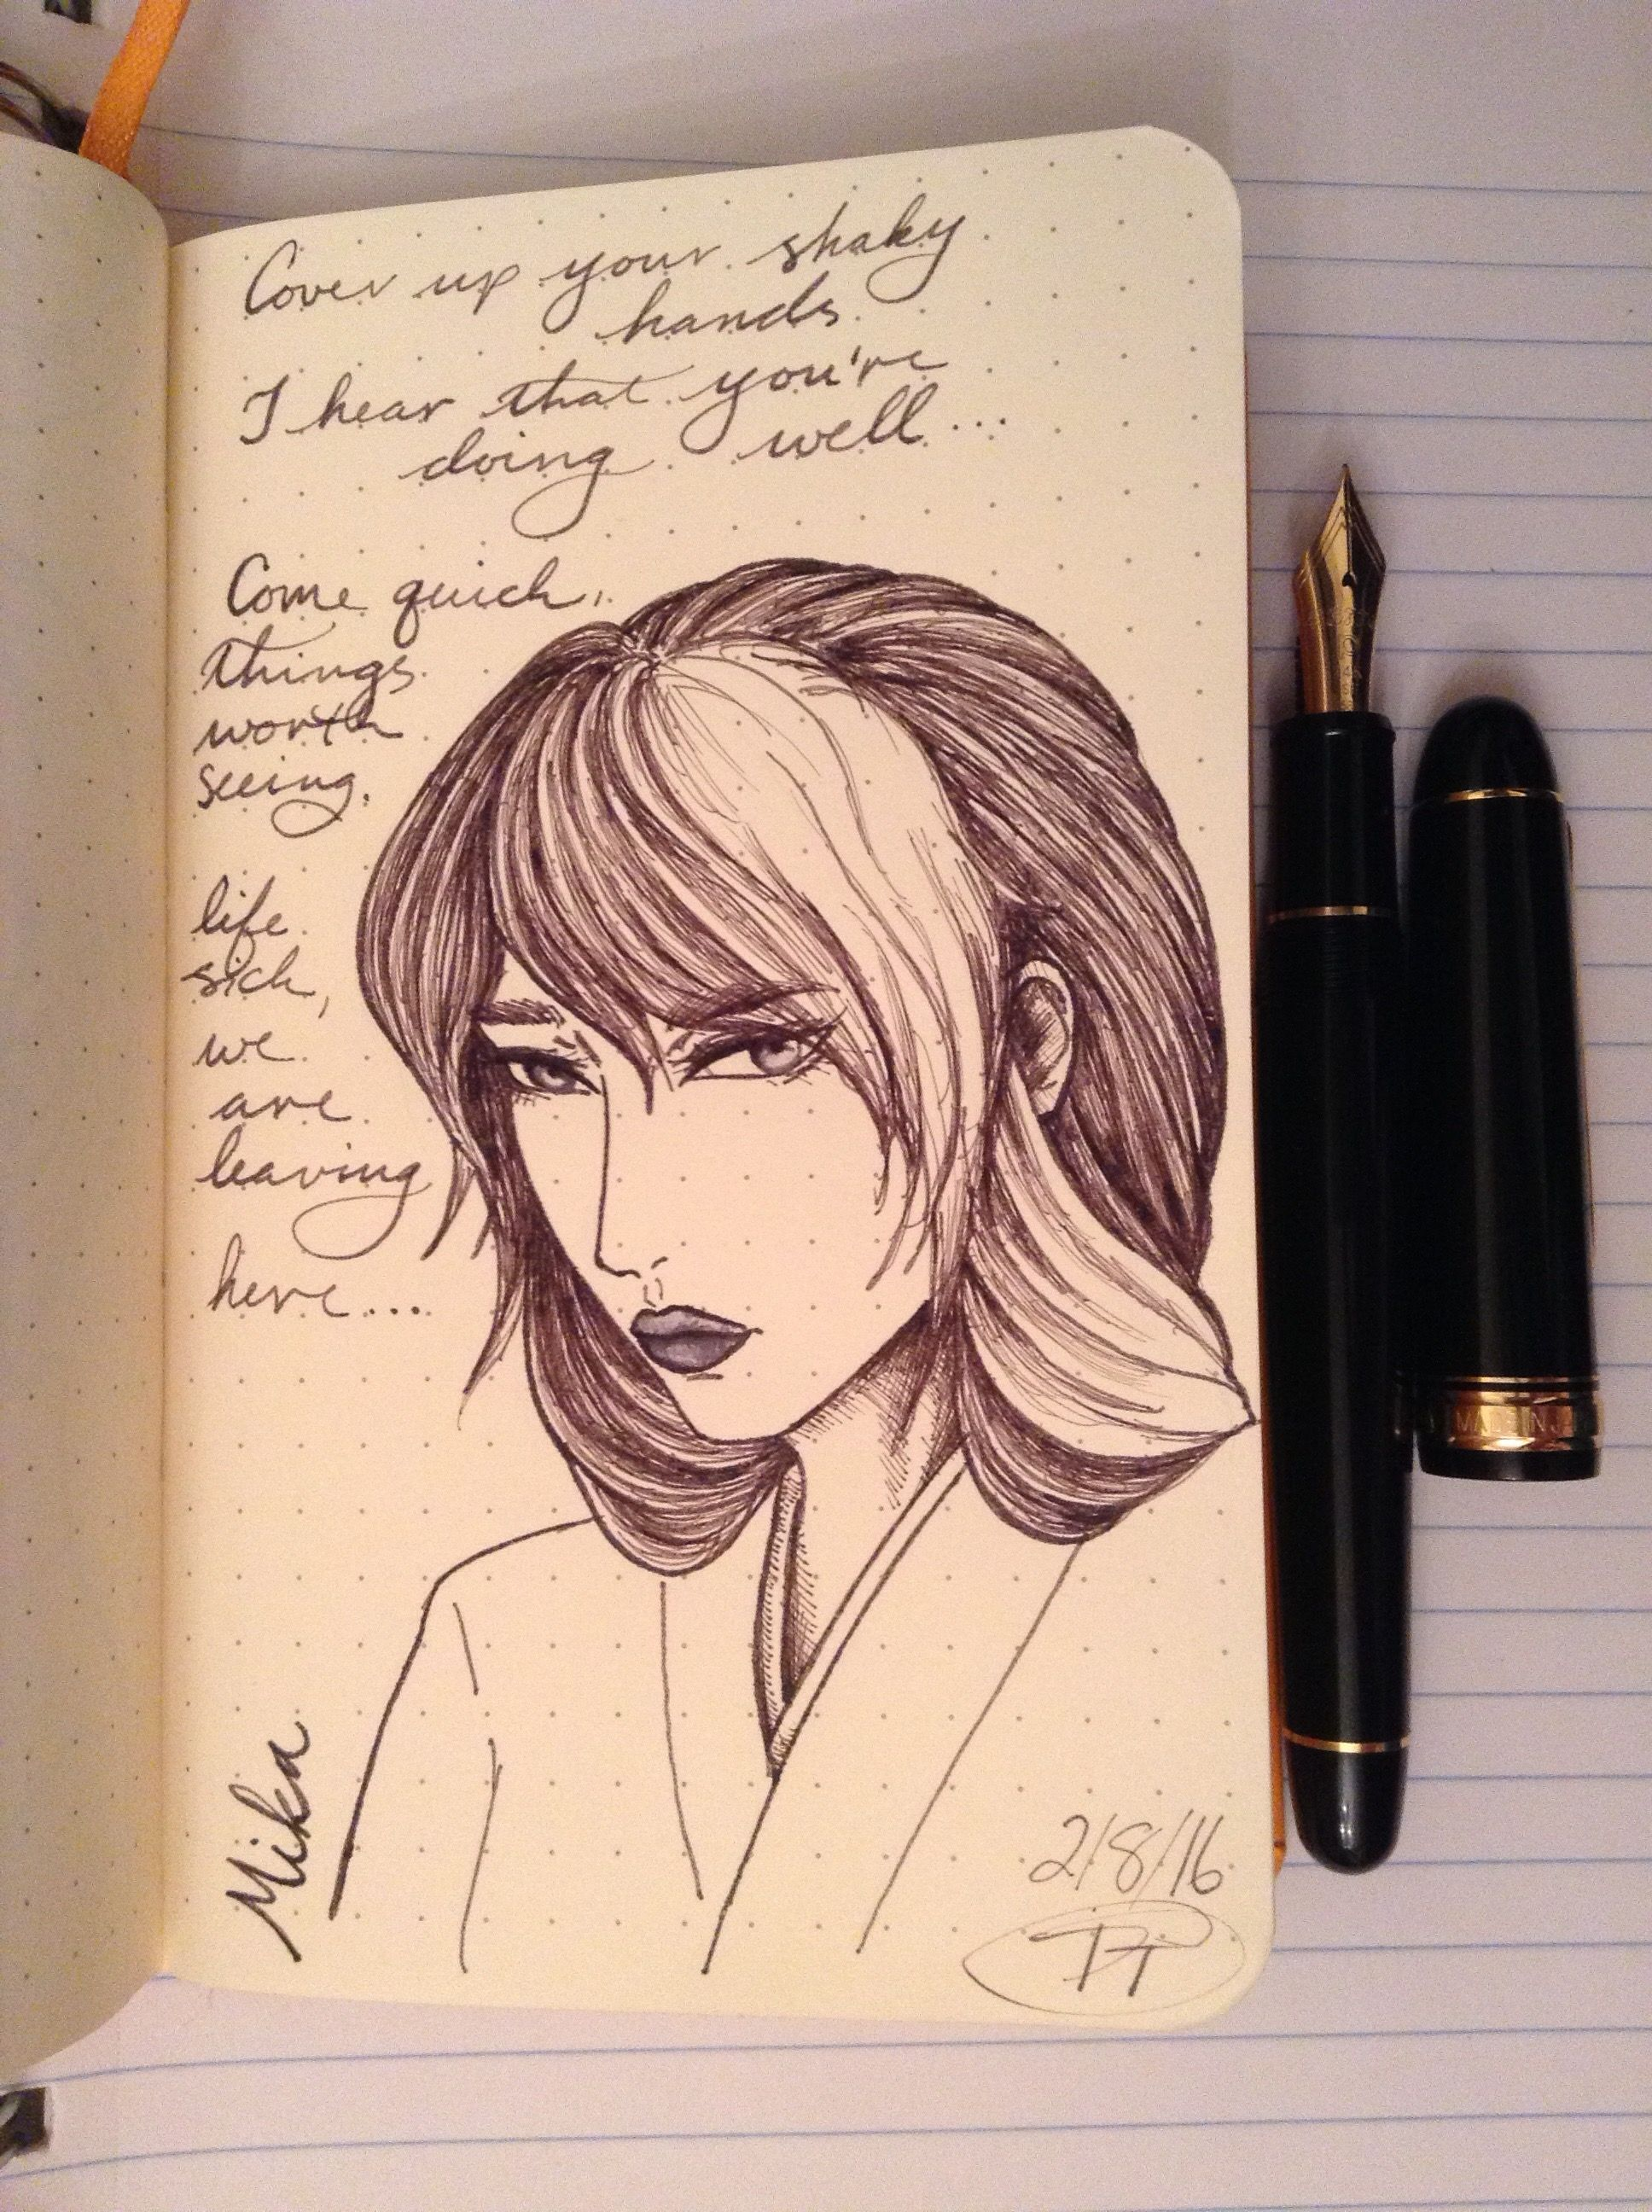 Day 39: Mika, a shrine maiden. Formerly a romantic and happy girl, the war changed her to morose and near-mute, her hair turning white prematurely from the trauma of her lord's execution. Diamine Salamander in a Platinum 3776 Century Black SF